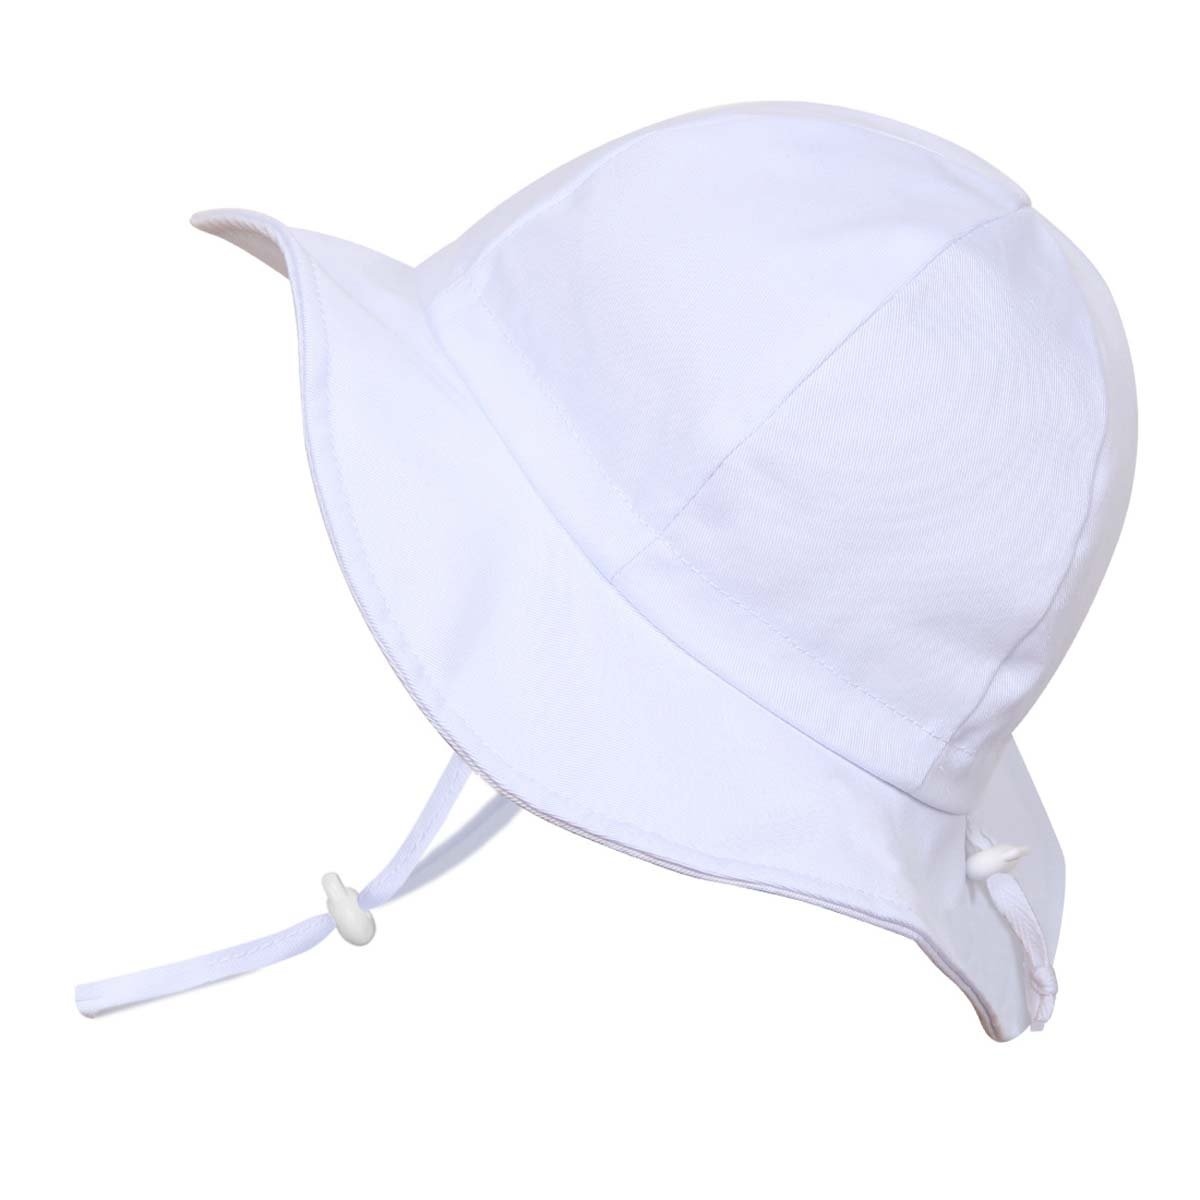 Twinklebelle Toddler Children UV Protective Cotton Sunhats 50 UPF, Adjustable, Stay-On Tie (L: 2-12Y, Floppy Hat: Cool White)